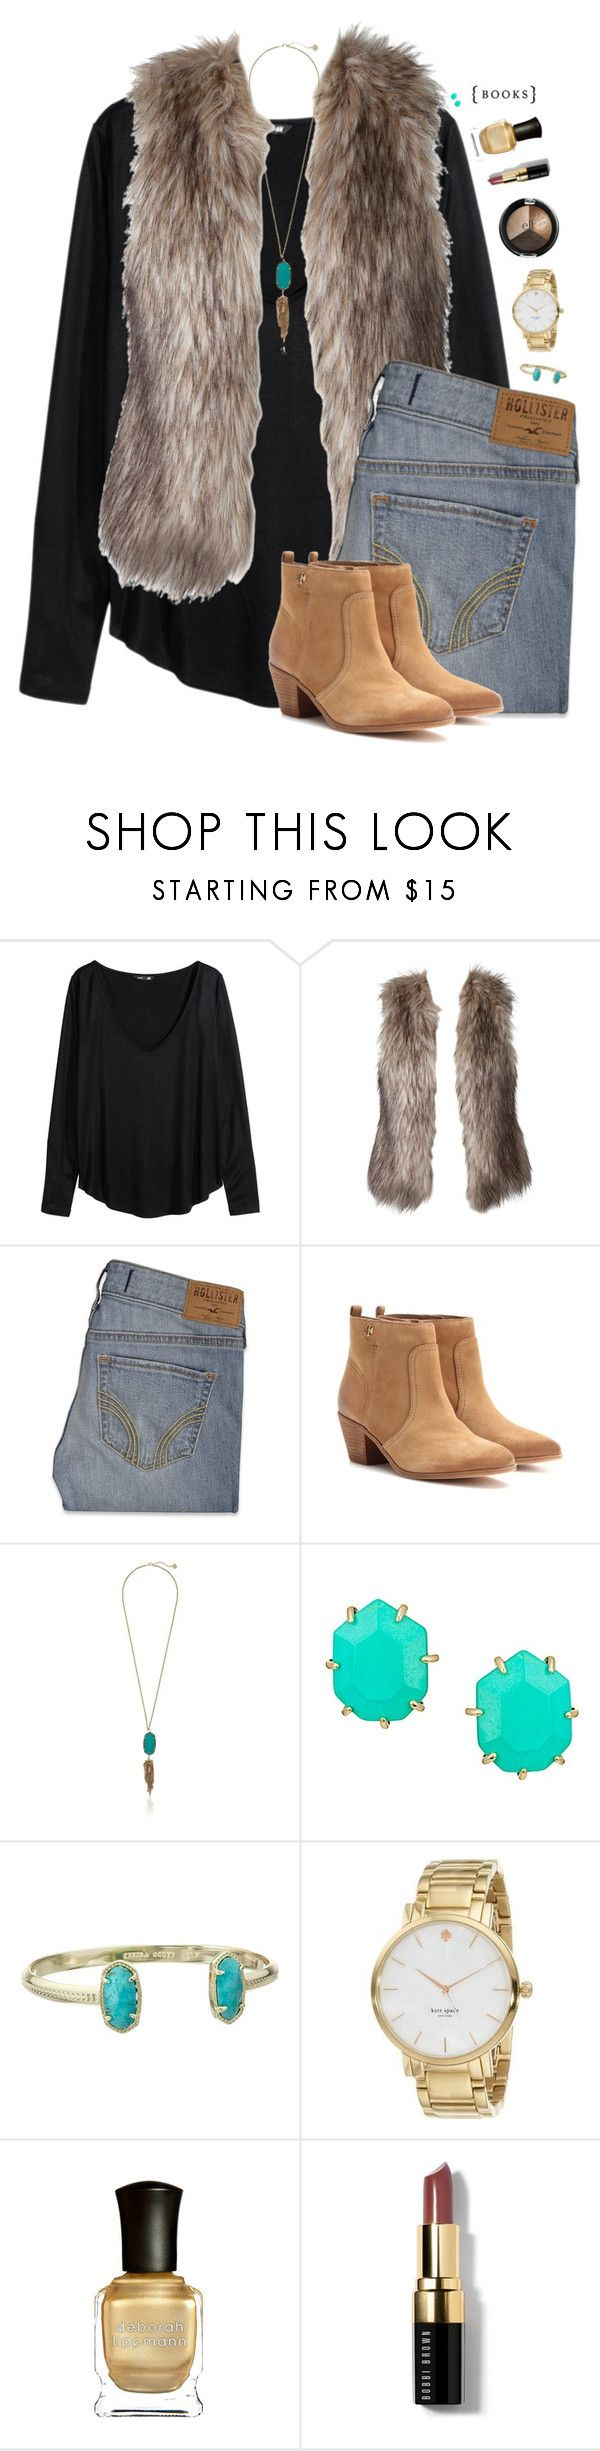 """perfectionist"" by chevron-elephants ❤ liked on Polyvore featuring H&M, Hollister Co., Tory Burch, Kendra Scott, Kate Spade, Deborah Lippmann and Bobbi Brown Cosmetics"